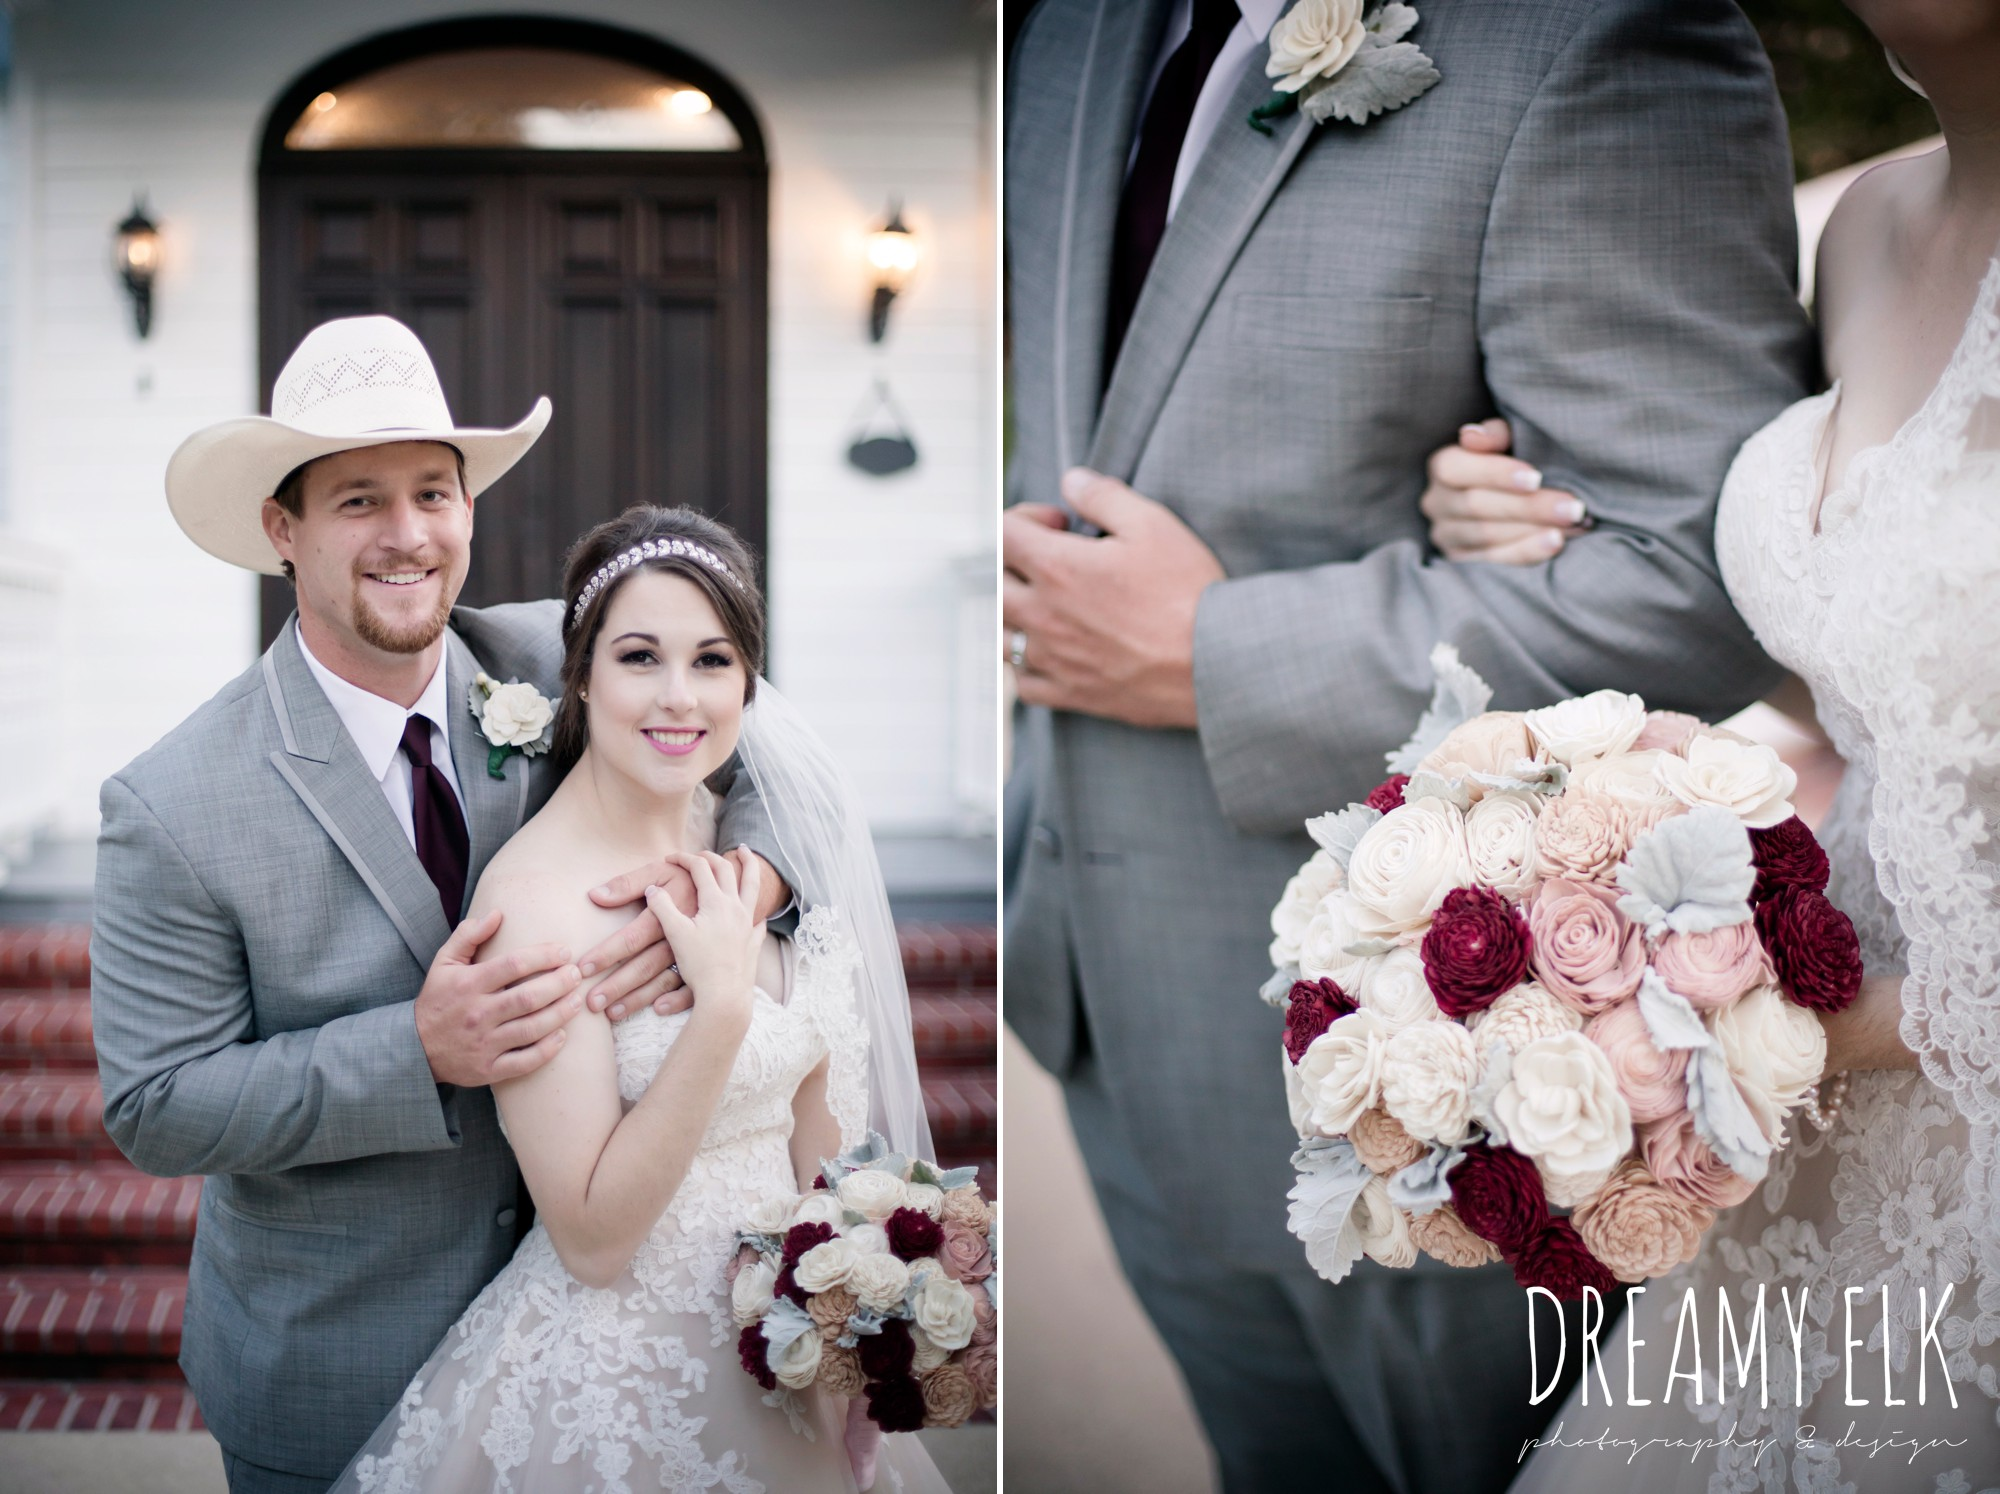 bride, sweetheart lace ballgown wedding dress, oyester underlay, lace trimmed veil, rhinestone headpiece, groom, cowboy hat, men's wearhouse gray tux with maroon vest and tie, september wedding photo, ashelynn manor, magnolia, texas, austin texas wedding photographer {dreamy elk photography and design}